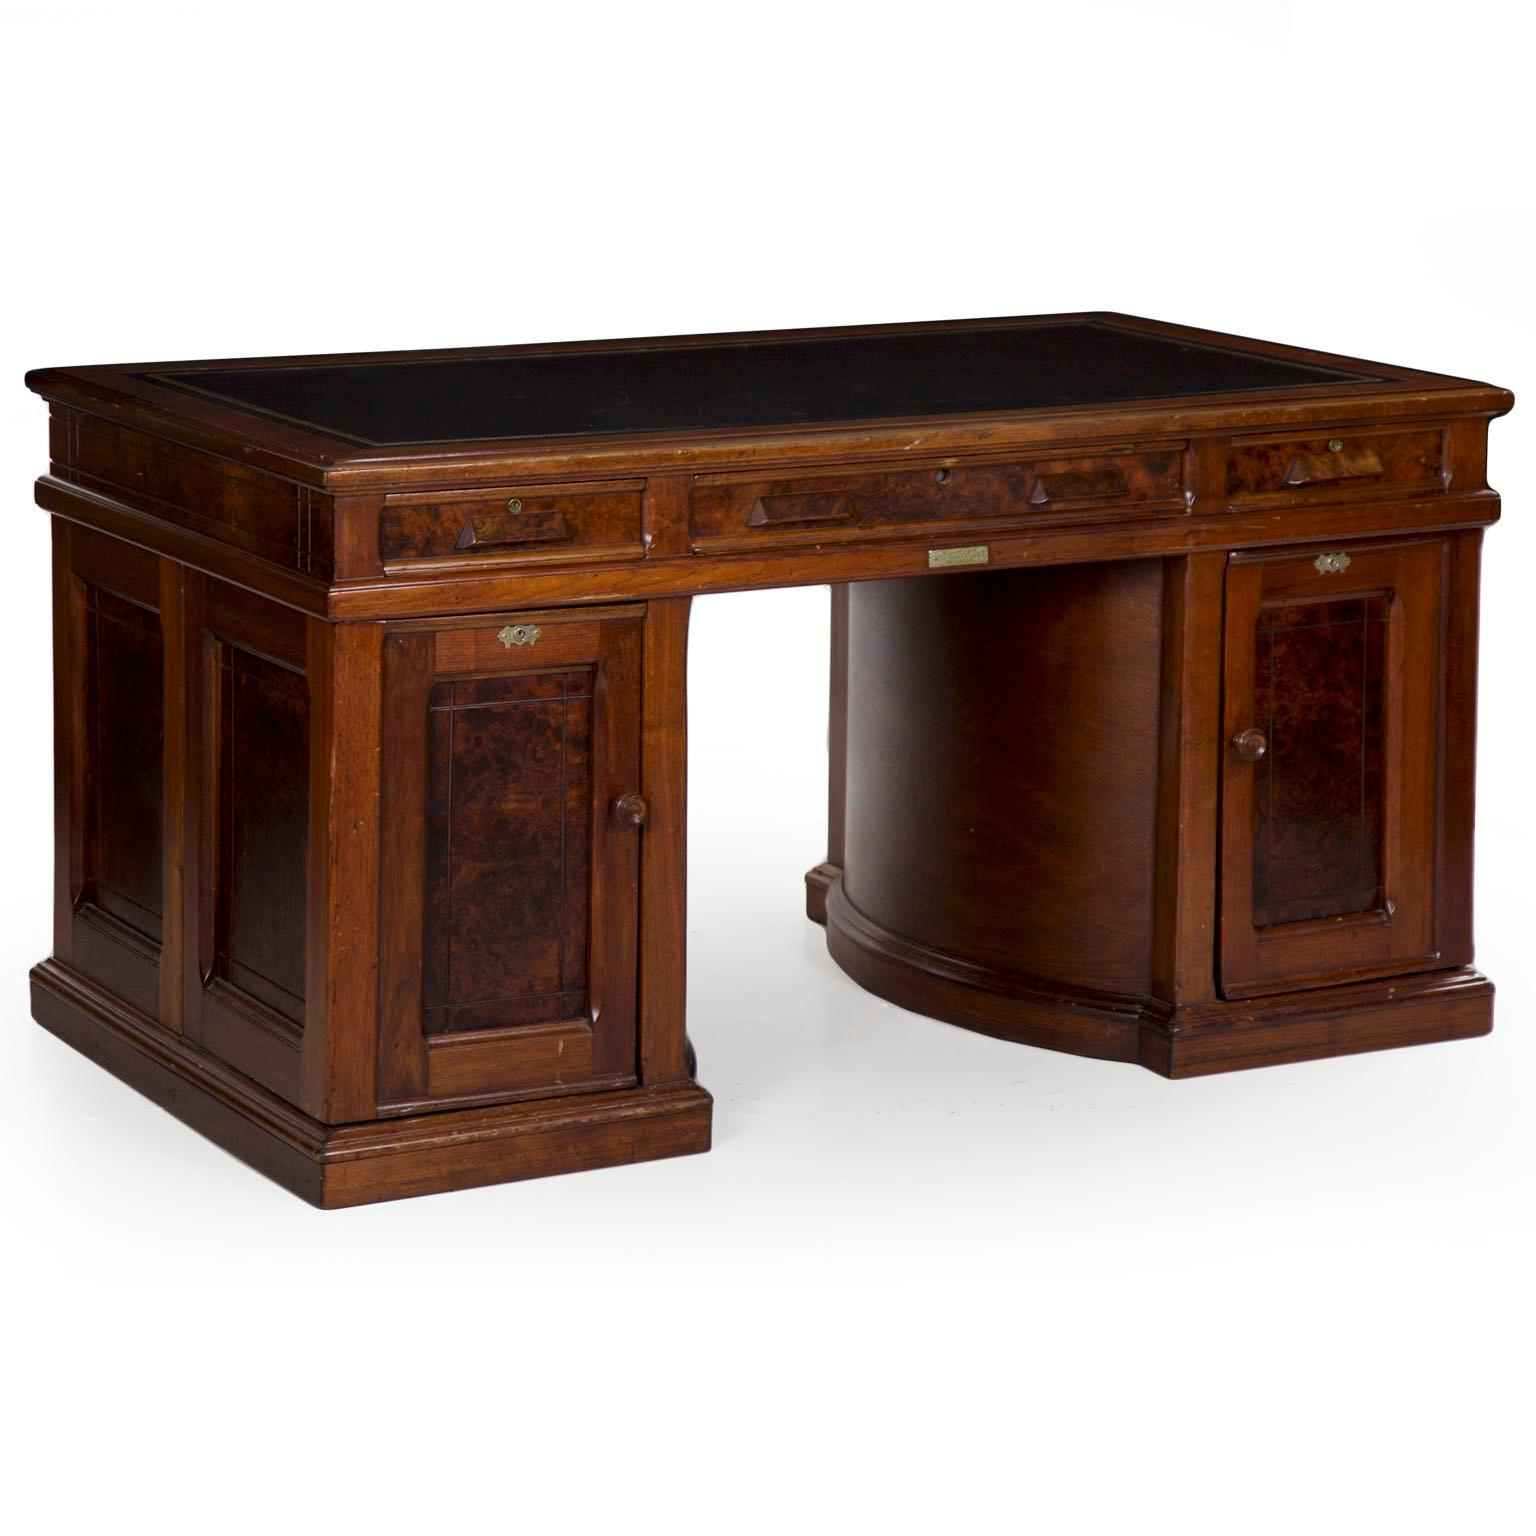 A Rare And Excellent Office Desk Designed And Manufactured By The Wooton Desk  Company Of Indianapolis